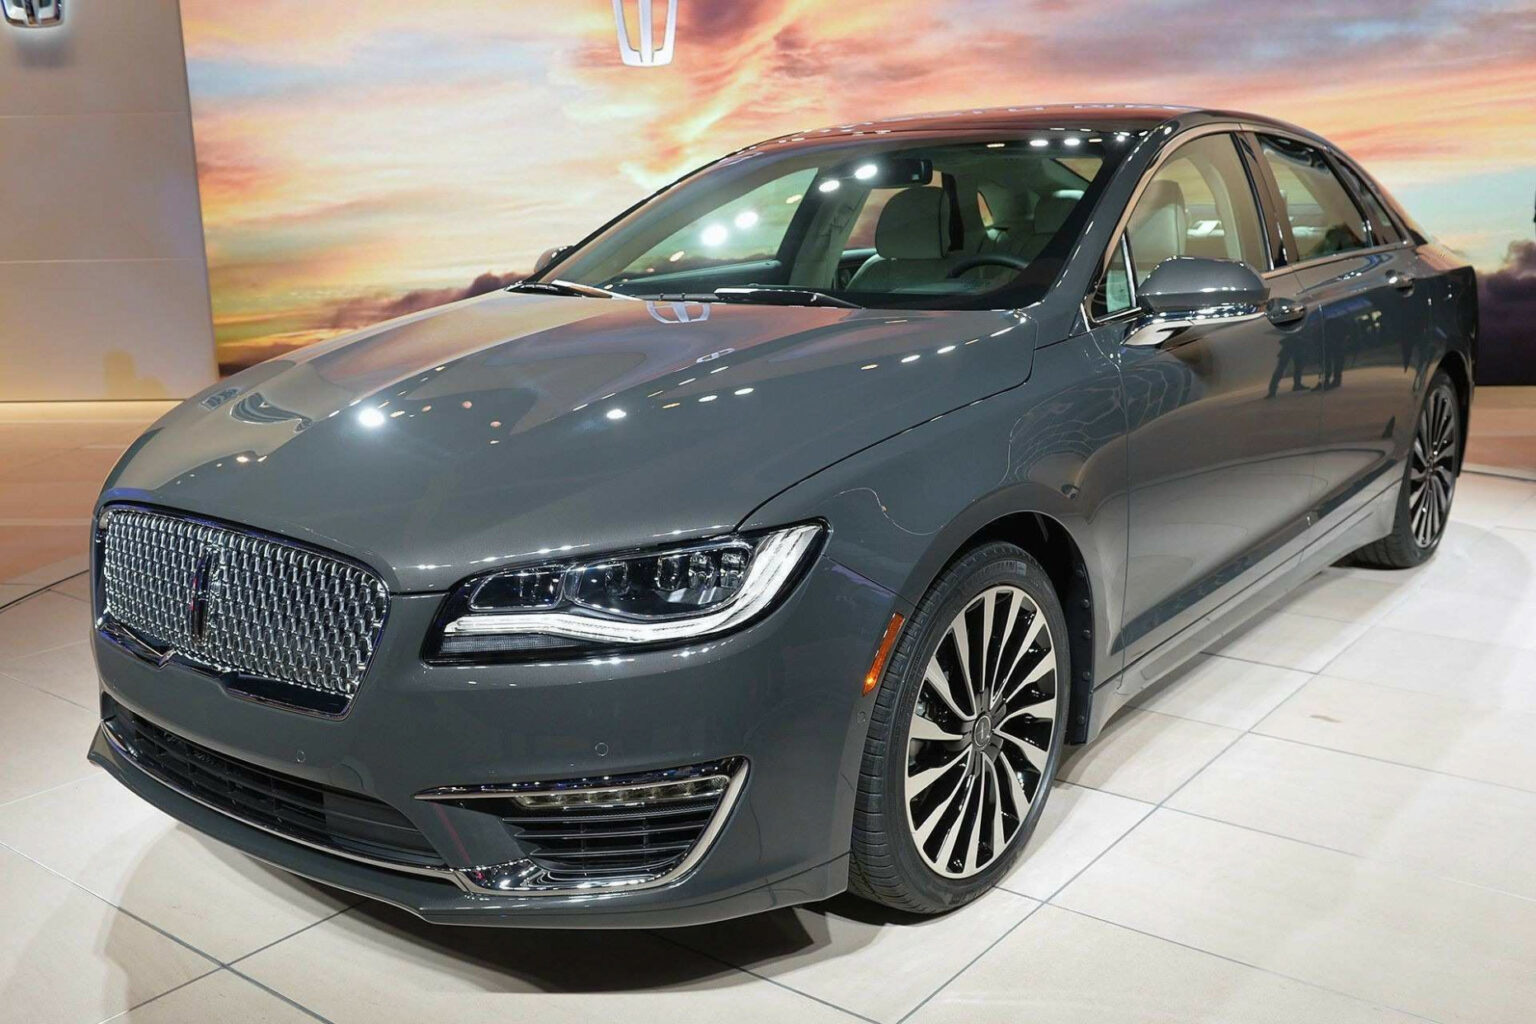 Overview Spy Shots Lincoln Mkz Sedan - Cars Review : Cars ...